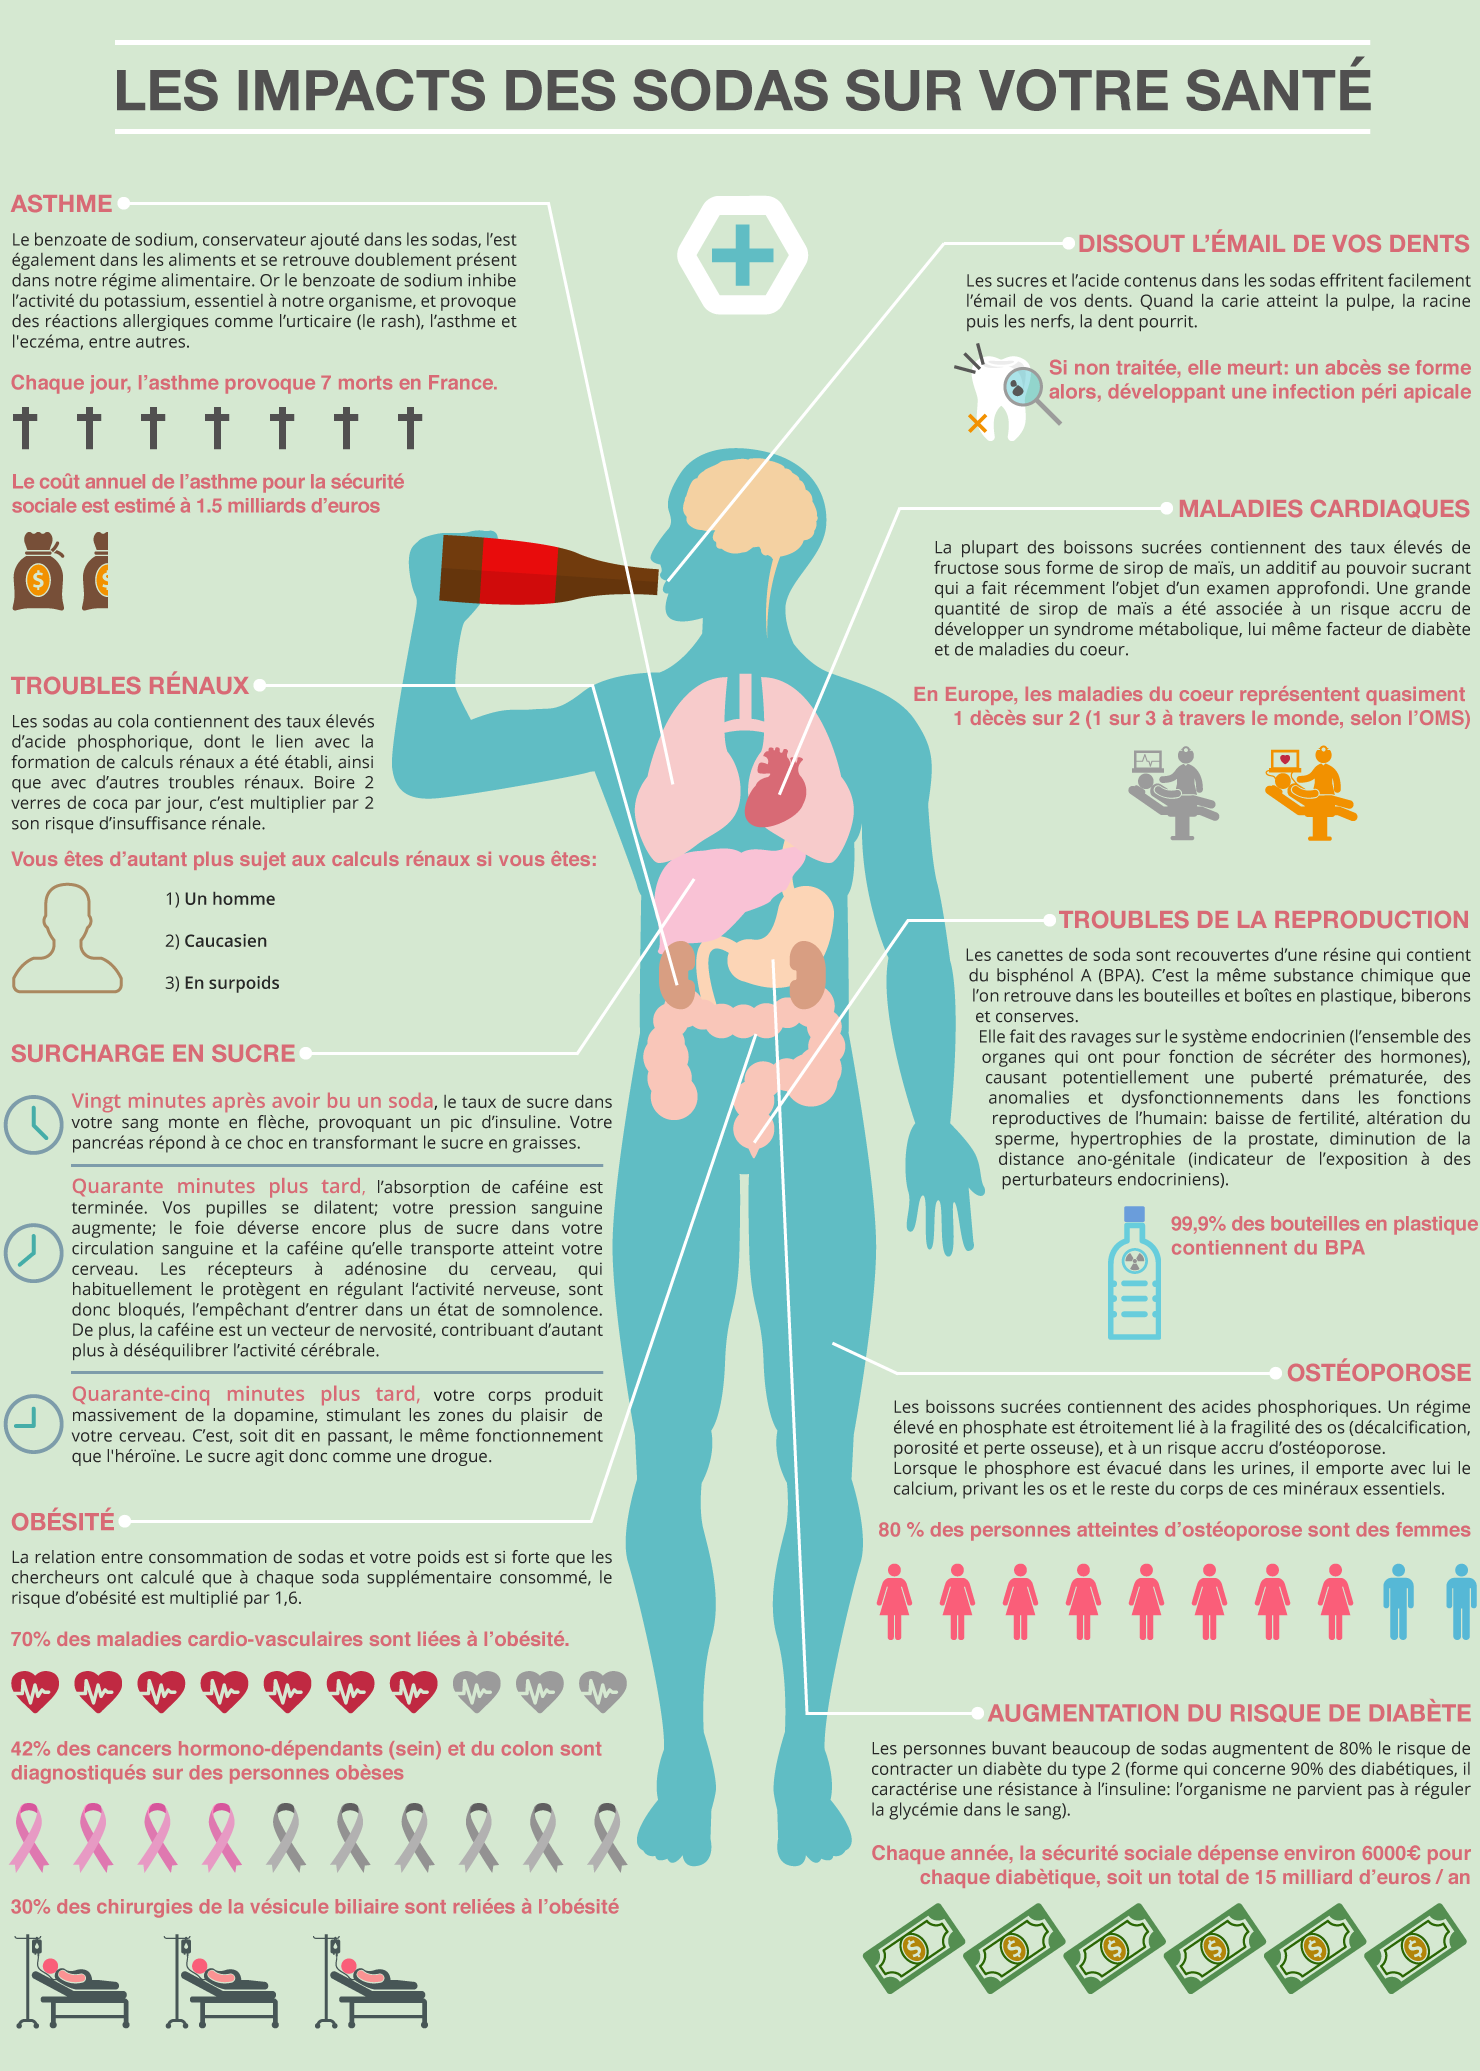 infographie-dangers-soda-sante